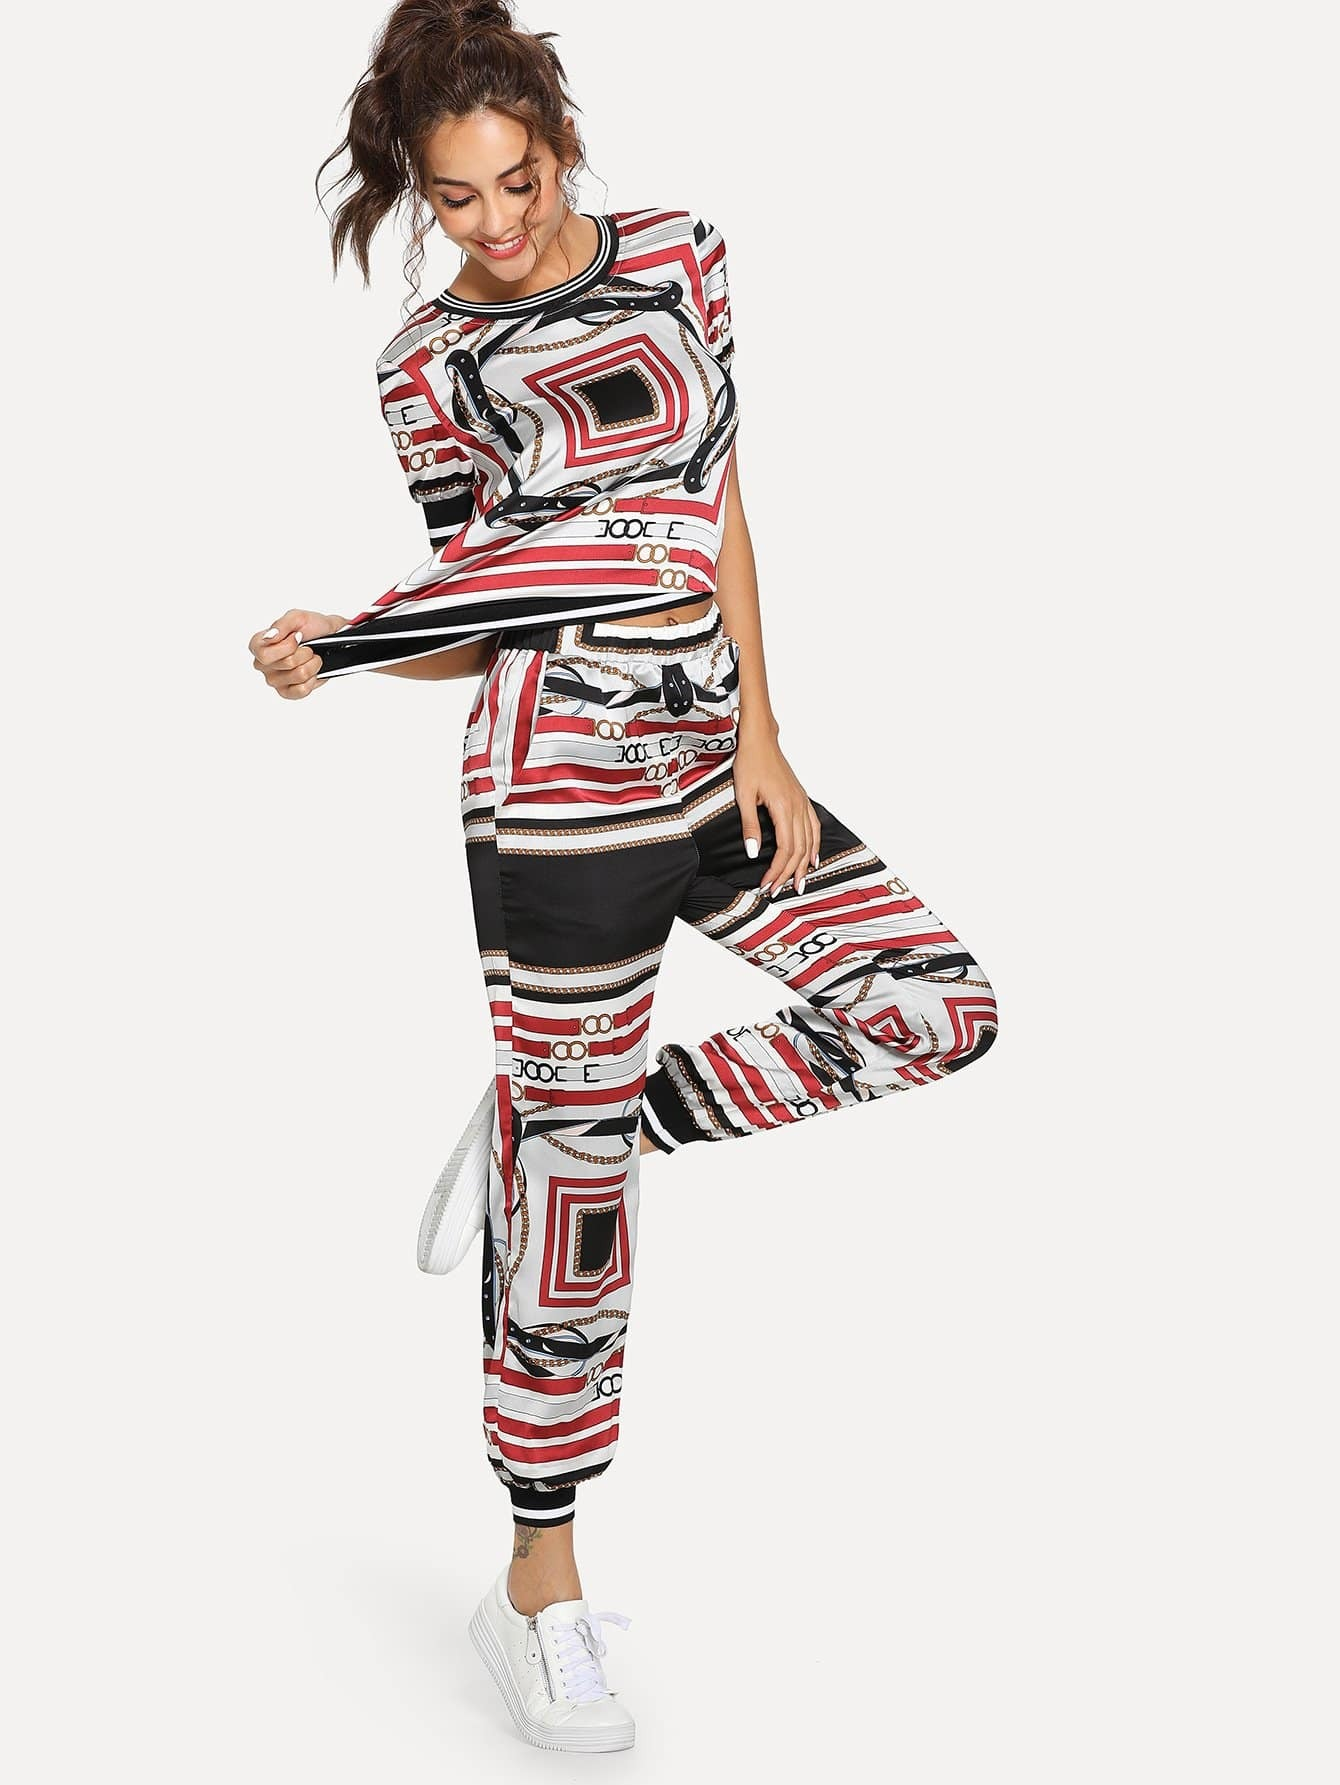 Graphic Print Top and Pocket Side Pants Set love graphic tank top and pants twinset